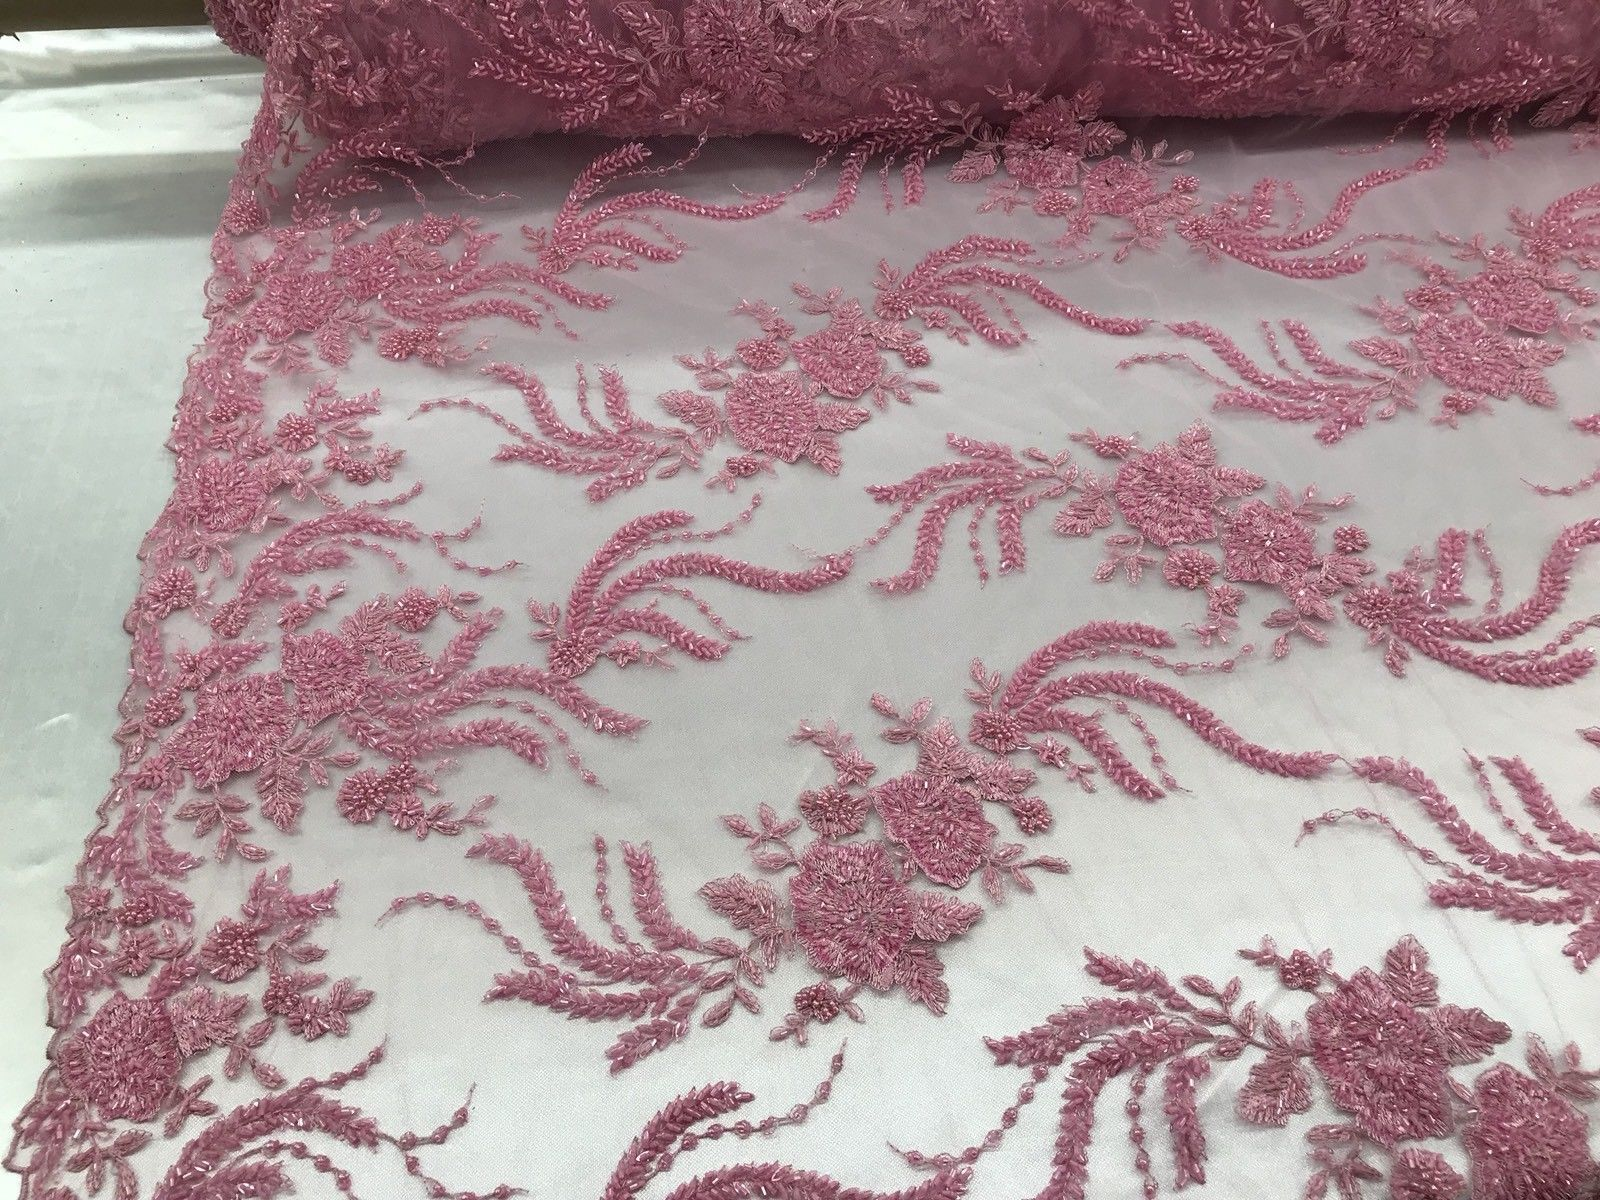 Secret's Design Beaded Lace Fabric - By The Yard Embroidered Mesh Bridal Wedding Dress Pink - KINGDOM OF FABRICS